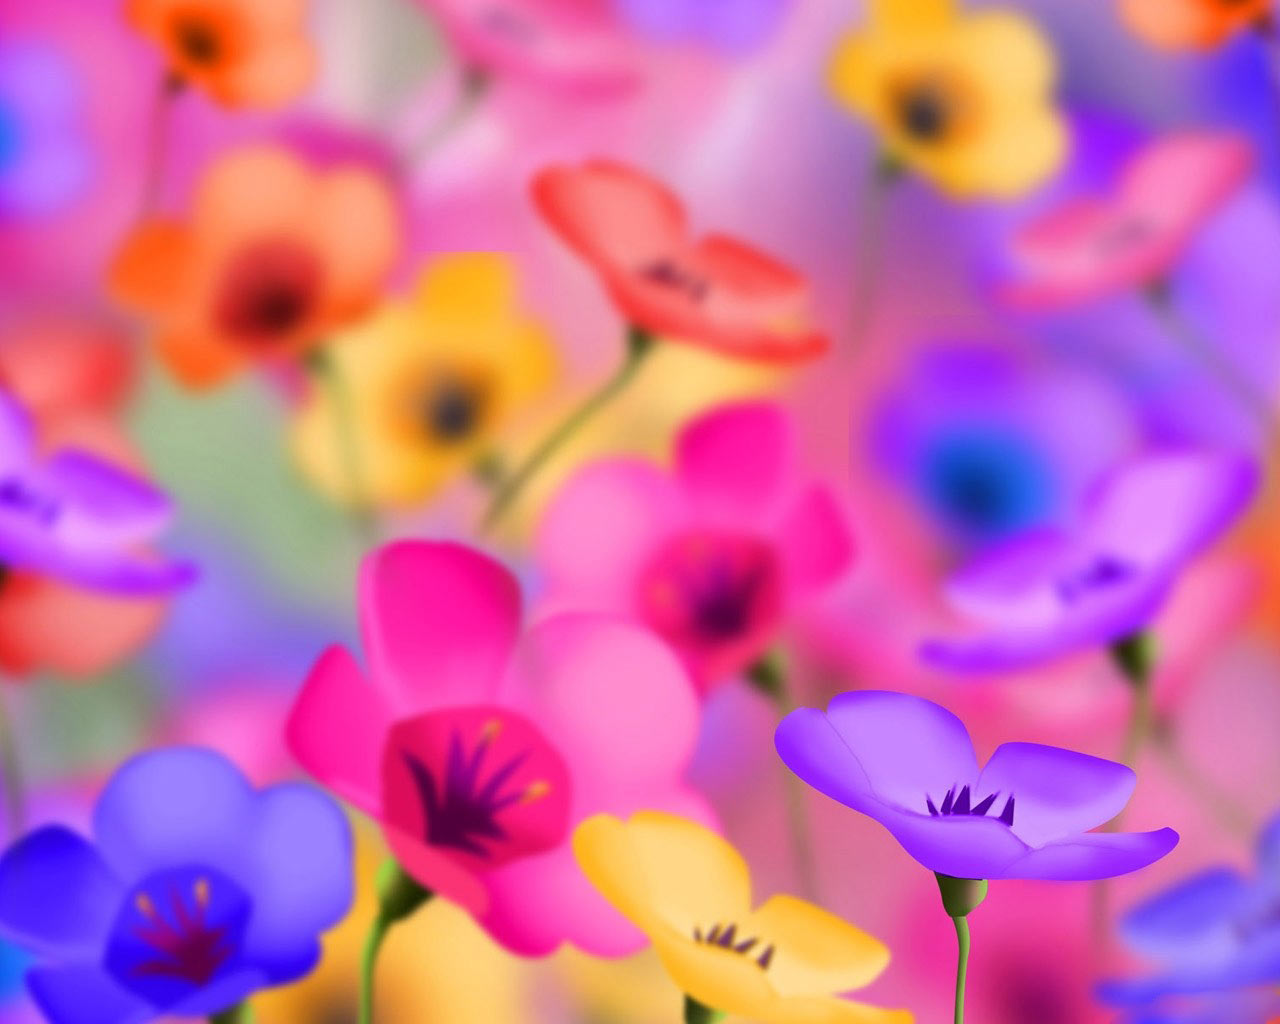 Pretty Colorful Backgrounds 1280x1024